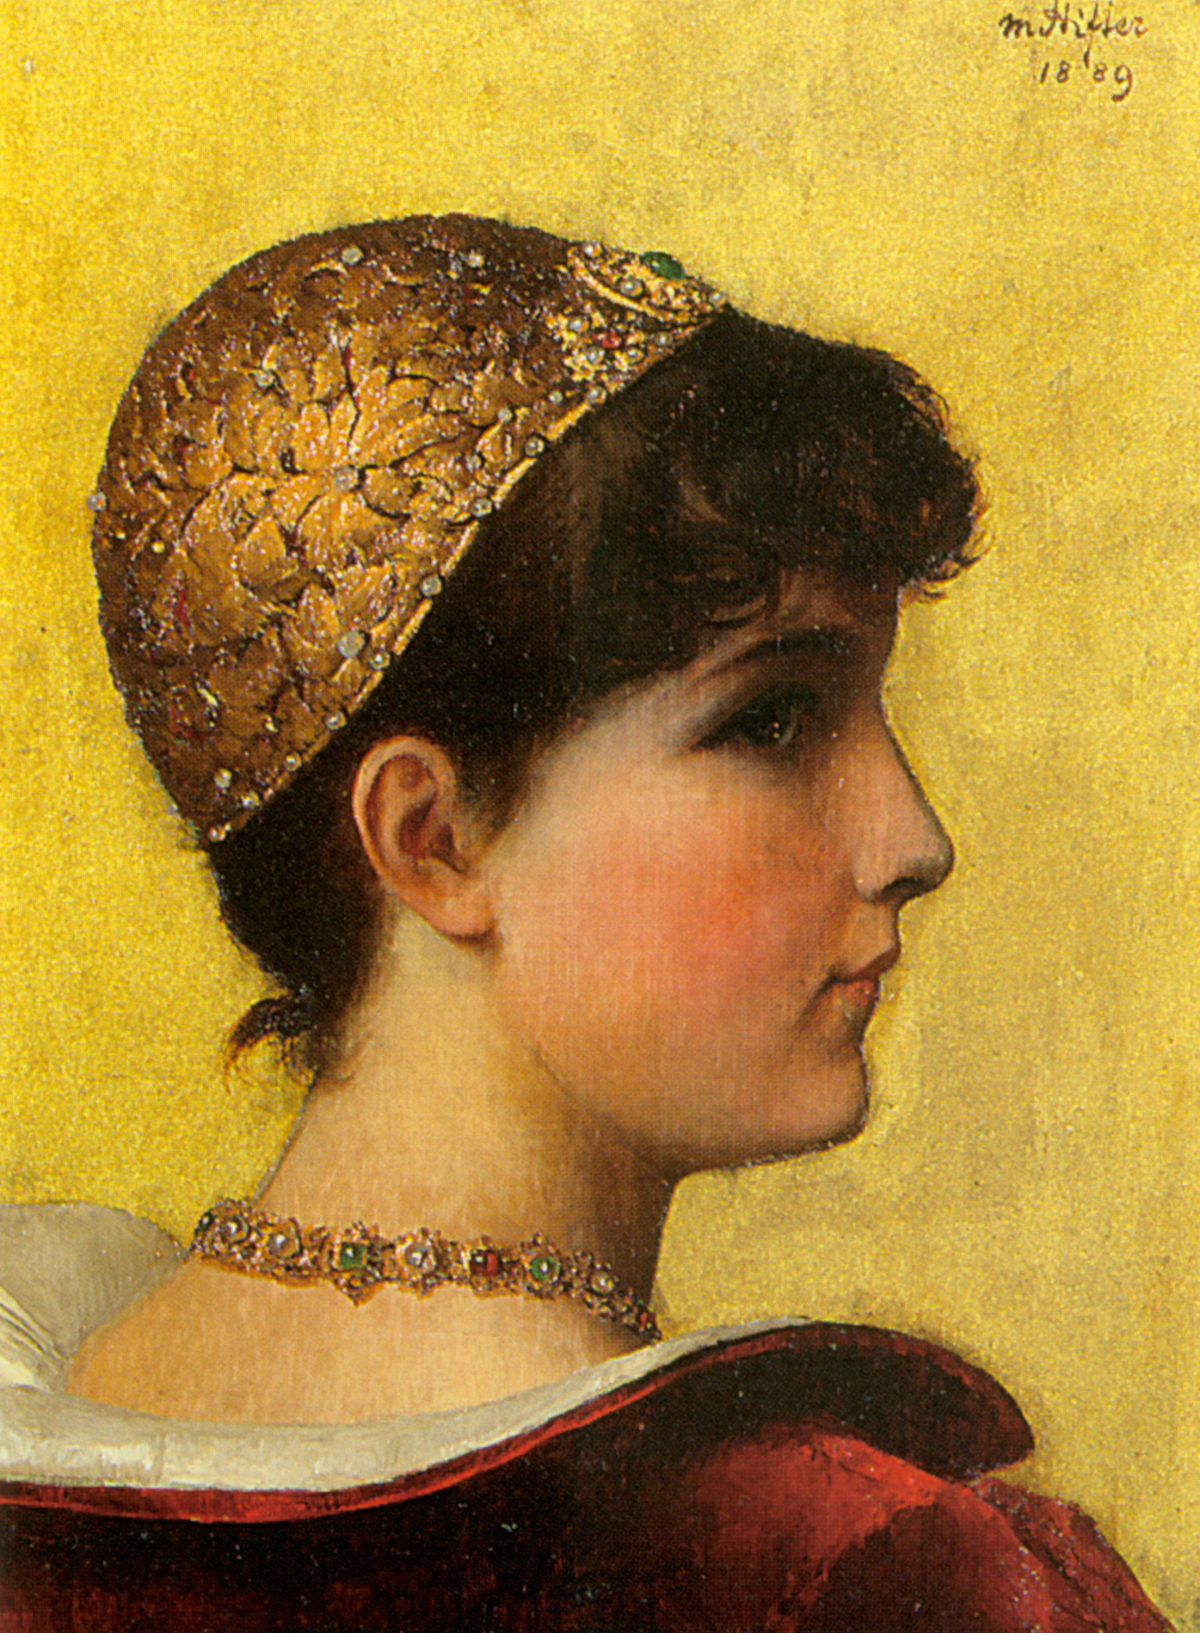 A Beauty in Historical Costume by Moritz Stifter